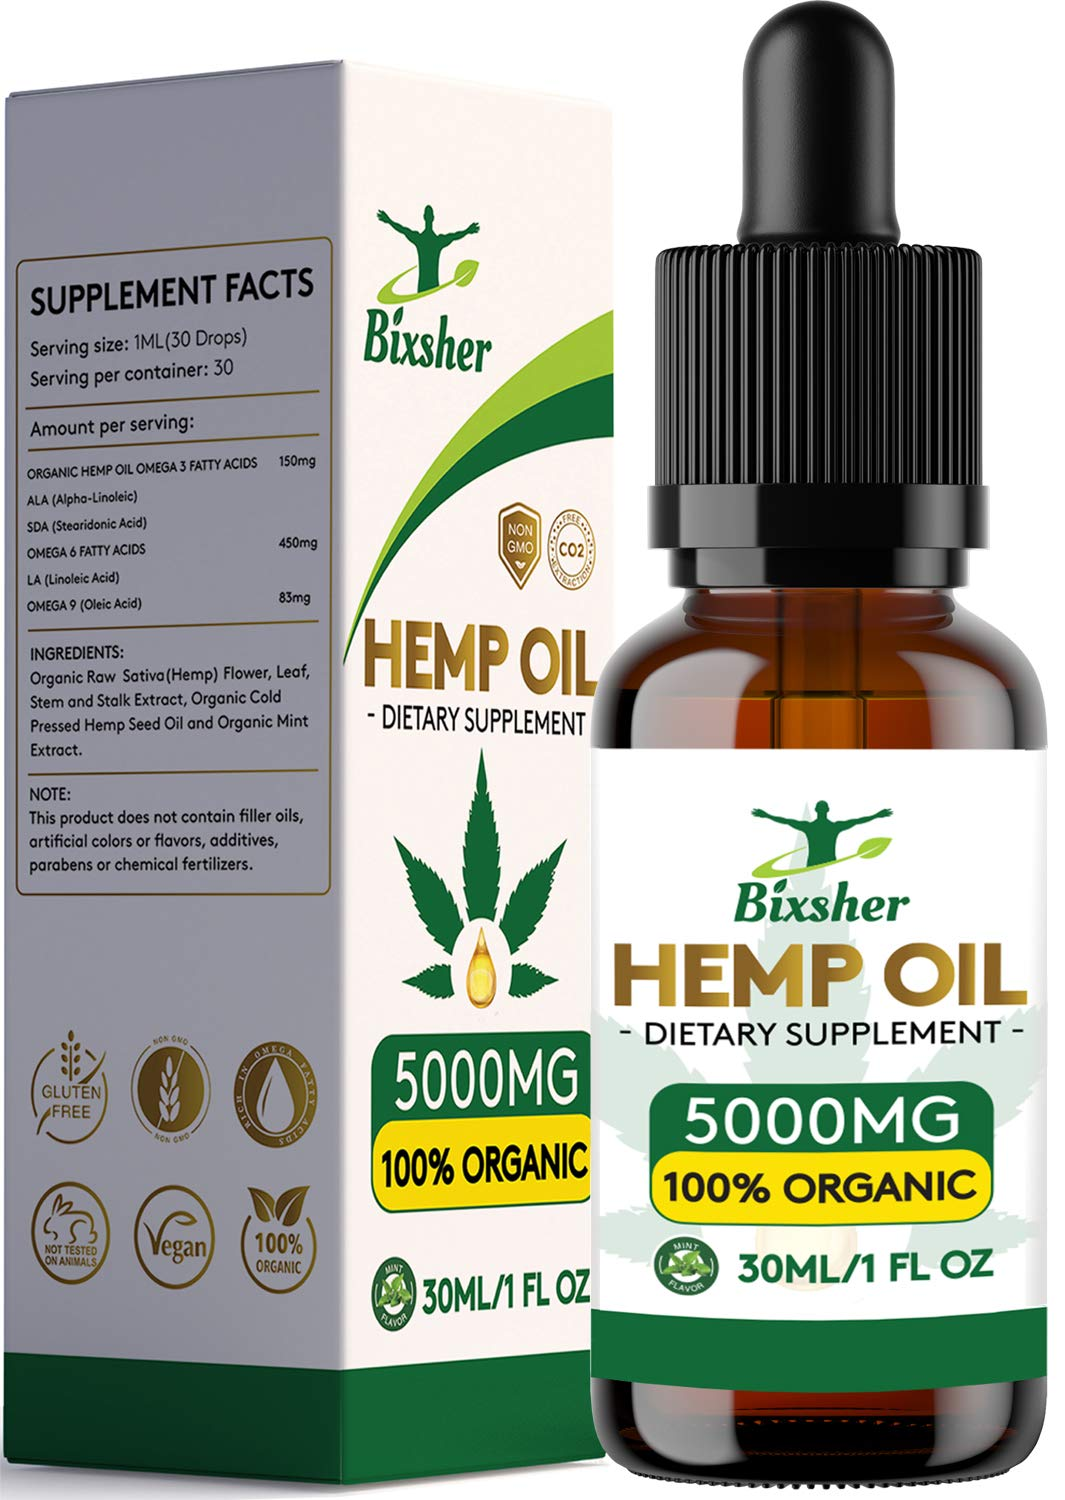 Premium Hemp Oil Drops 5000 mg | Pure Organic | Natural Sleep Aid | for Pain Relief, Anxiety and Stress | Vegan Friendly | 100% Natural Ingredients Rich in Omega 3-6-9 & Vitamins | Gluten Free by Bixsher